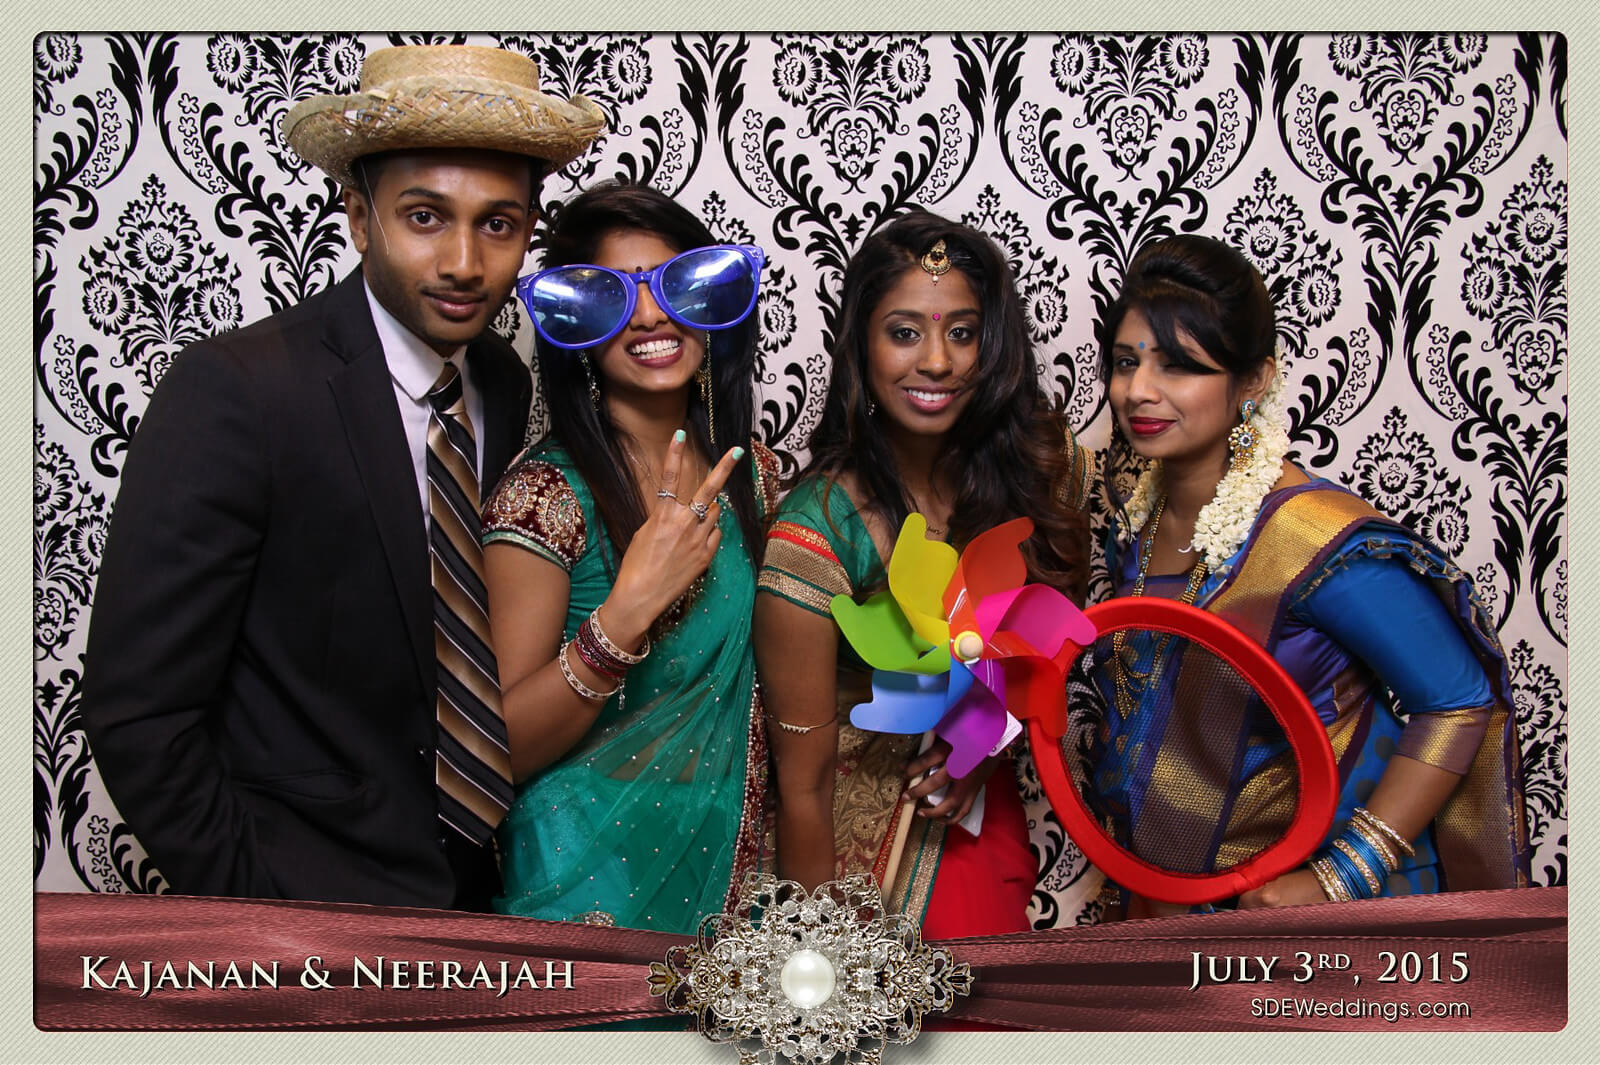 Toronto Scarborough Convention Centre Hindu Wedding Photo Booth Rental 9